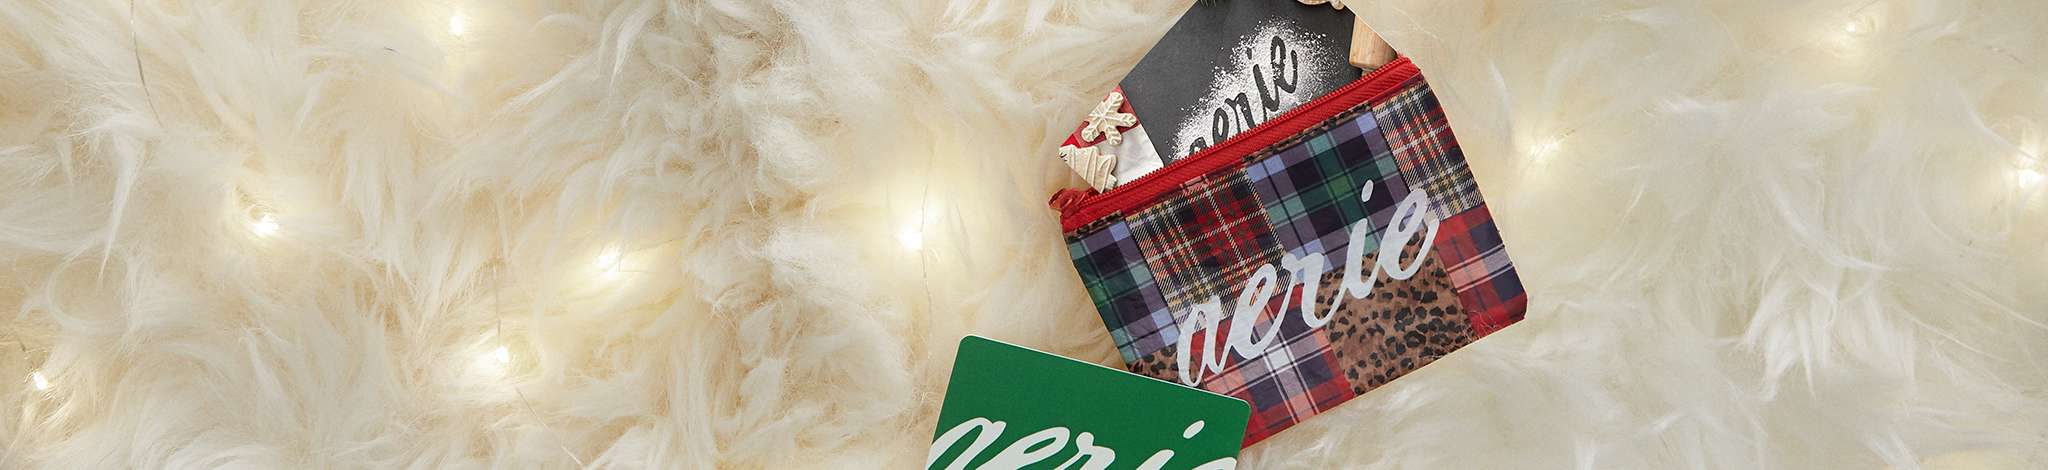 aerie gift cards